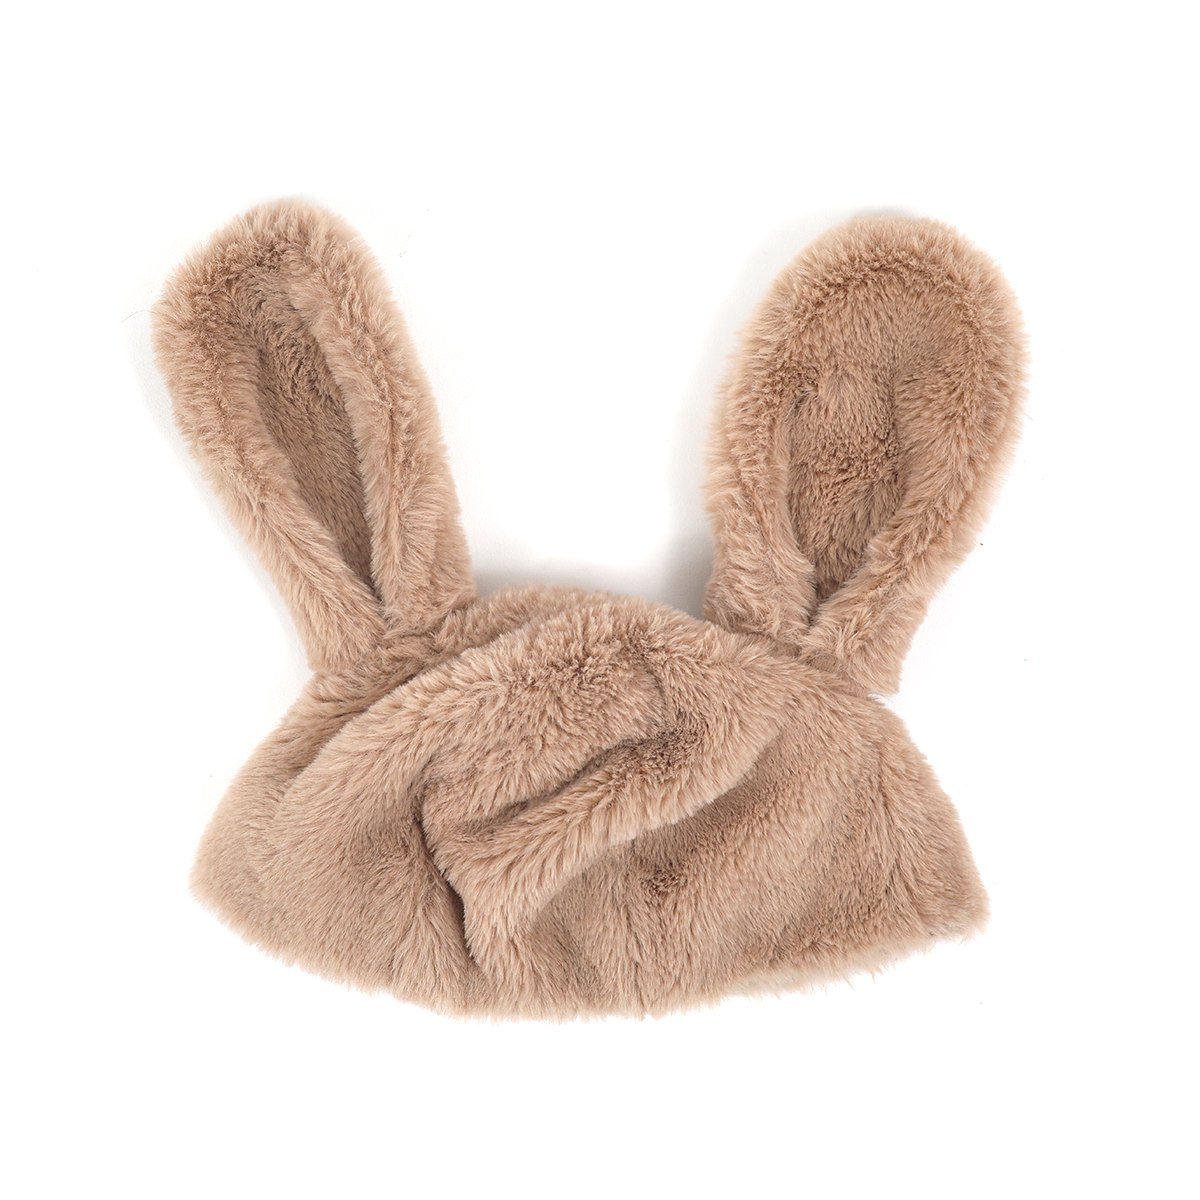 Rabbit Fur Hat 詳細画像3